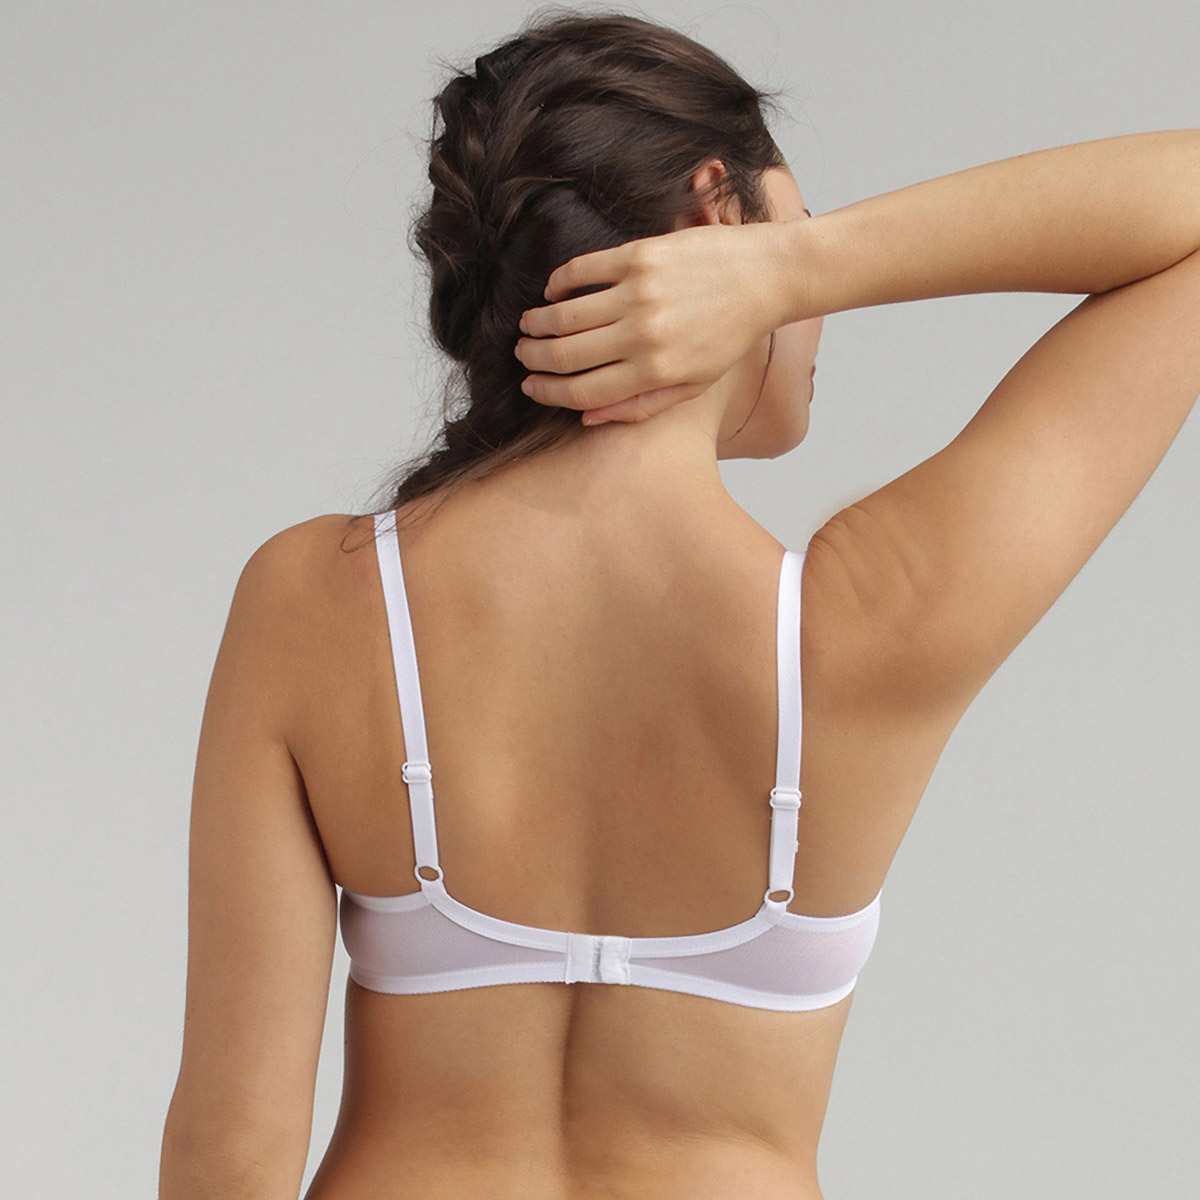 Underwired Lace Bra in White Essential Elegance, , PLAYTEX